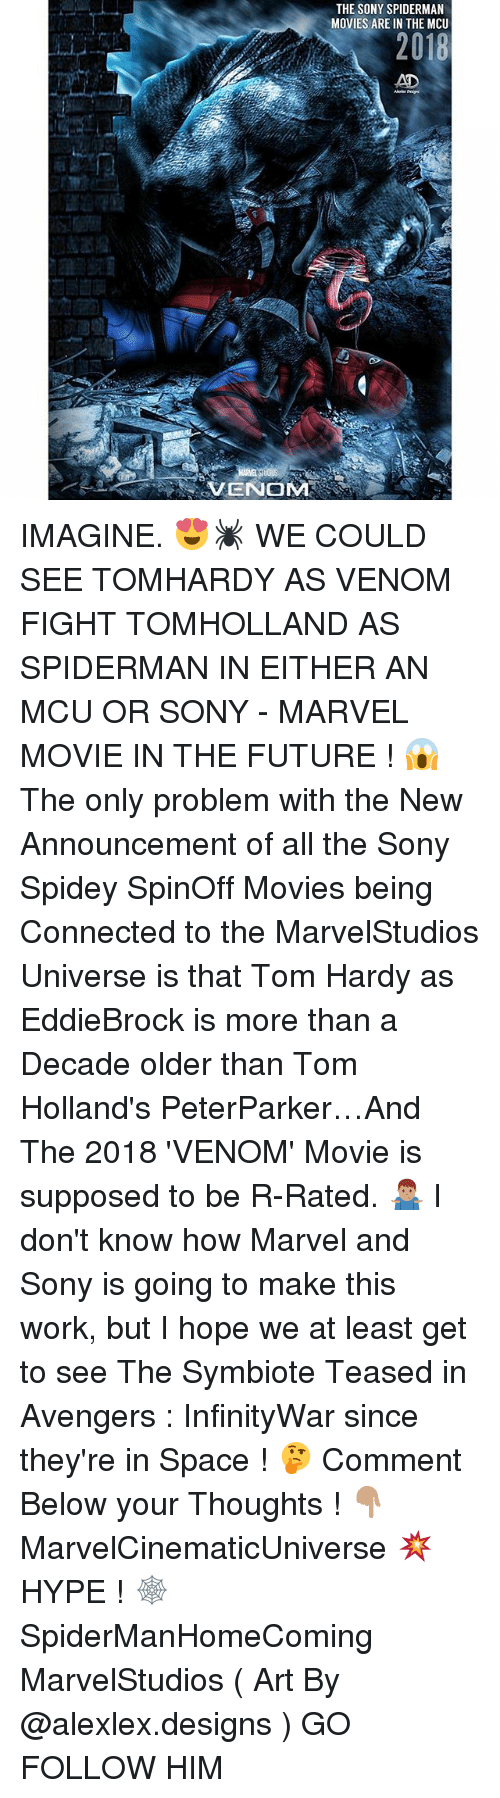 Future, Hype, and Memes: THE SONY SPIDERMAN  MOVIES ARE IN THE MCU  2018  AD  VENOM IMAGINE. 😍🕷 WE COULD SEE TOMHARDY AS VENOM FIGHT TOMHOLLAND AS SPIDERMAN IN EITHER AN MCU OR SONY - MARVEL MOVIE IN THE FUTURE ! 😱 The only problem with the New Announcement of all the Sony Spidey SpinOff Movies being Connected to the MarvelStudios Universe is that Tom Hardy as EddieBrock is more than a Decade older than Tom Holland's PeterParker…And The 2018 'VENOM' Movie is supposed to be R-Rated. 🤷🏽‍♂️ I don't know how Marvel and Sony is going to make this work, but I hope we at least get to see The Symbiote Teased in Avengers : InfinityWar since they're in Space ! 🤔 Comment Below your Thoughts ! 👇🏽 MarvelCinematicUniverse 💥 HYPE ! 🕸 SpiderManHomeComing MarvelStudios ( Art By @alexlex.designs ) GO FOLLOW HIM